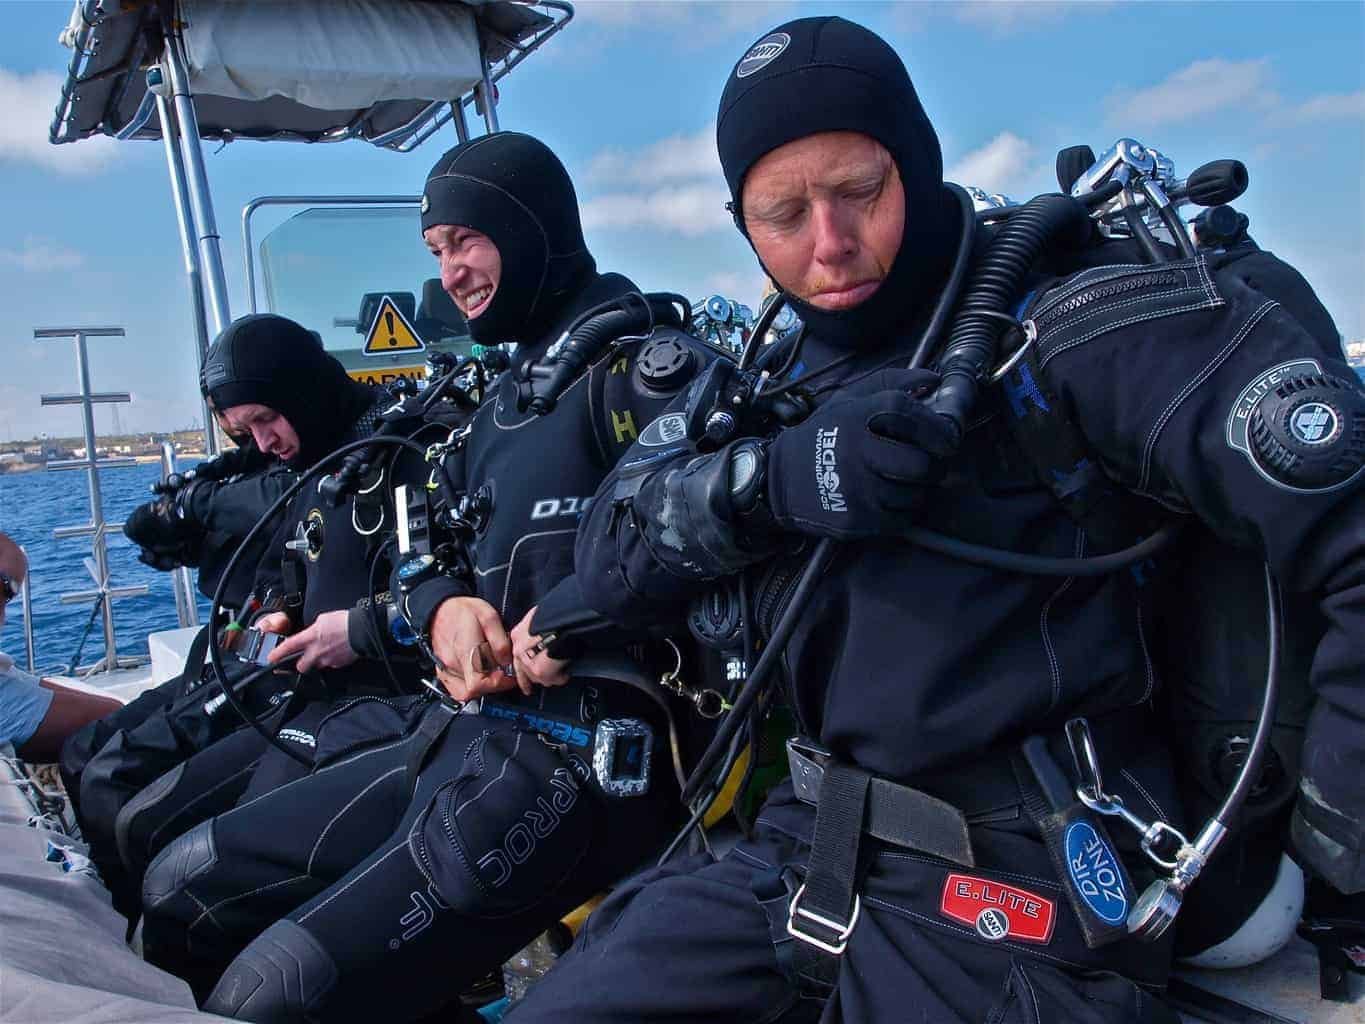 Andrew Tonge is an experienced technical diver and instructor